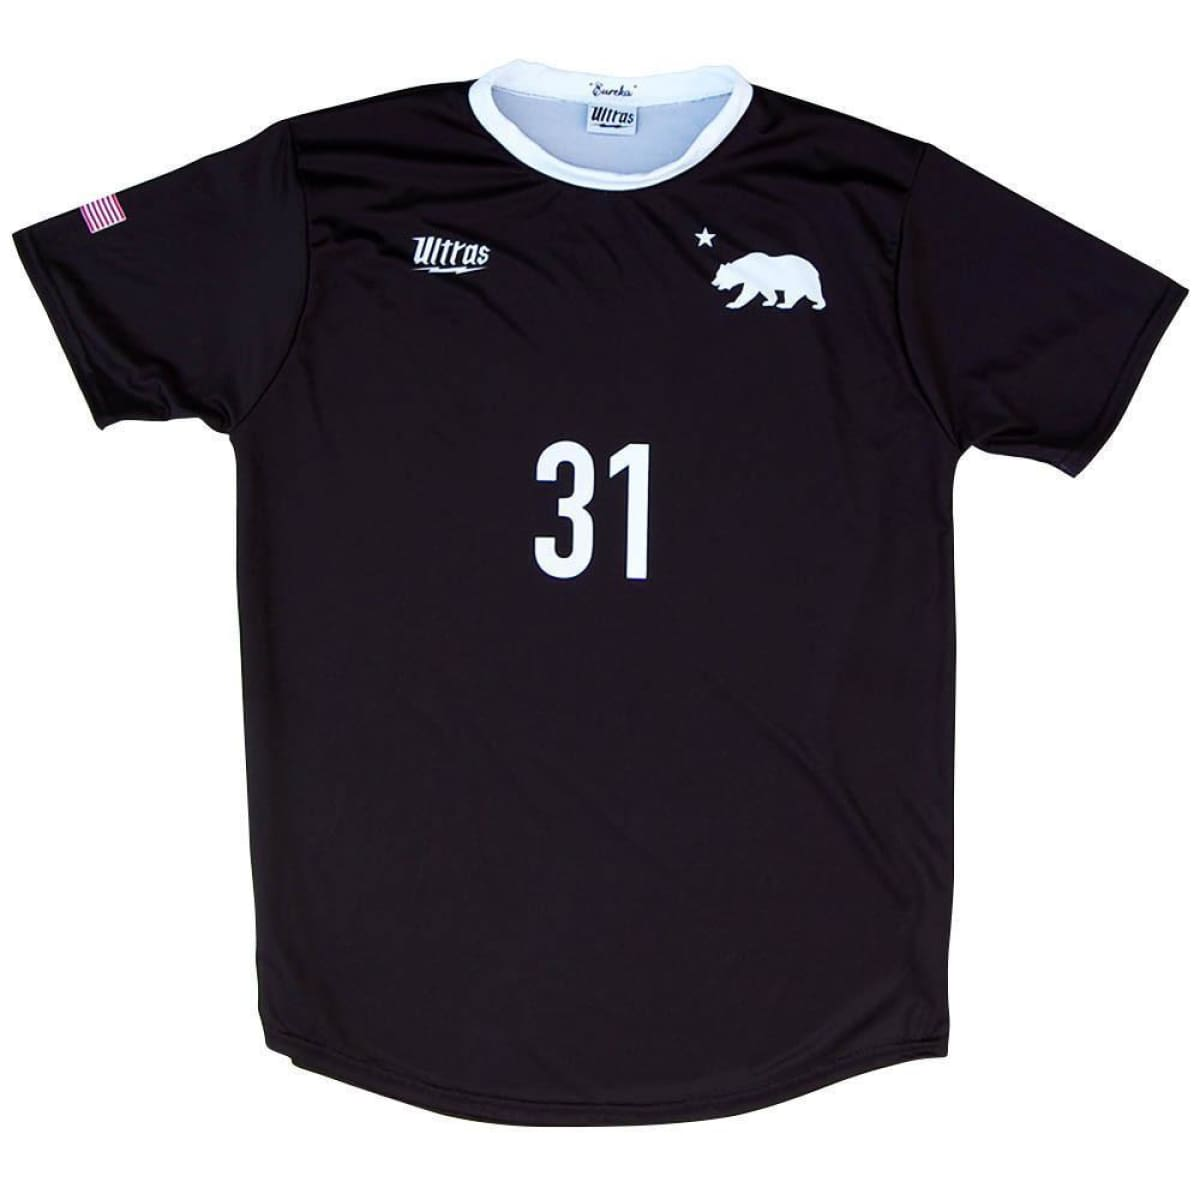 California State Cup Away Soccer Jersey - Ultras State Cup Soccer Jerseys